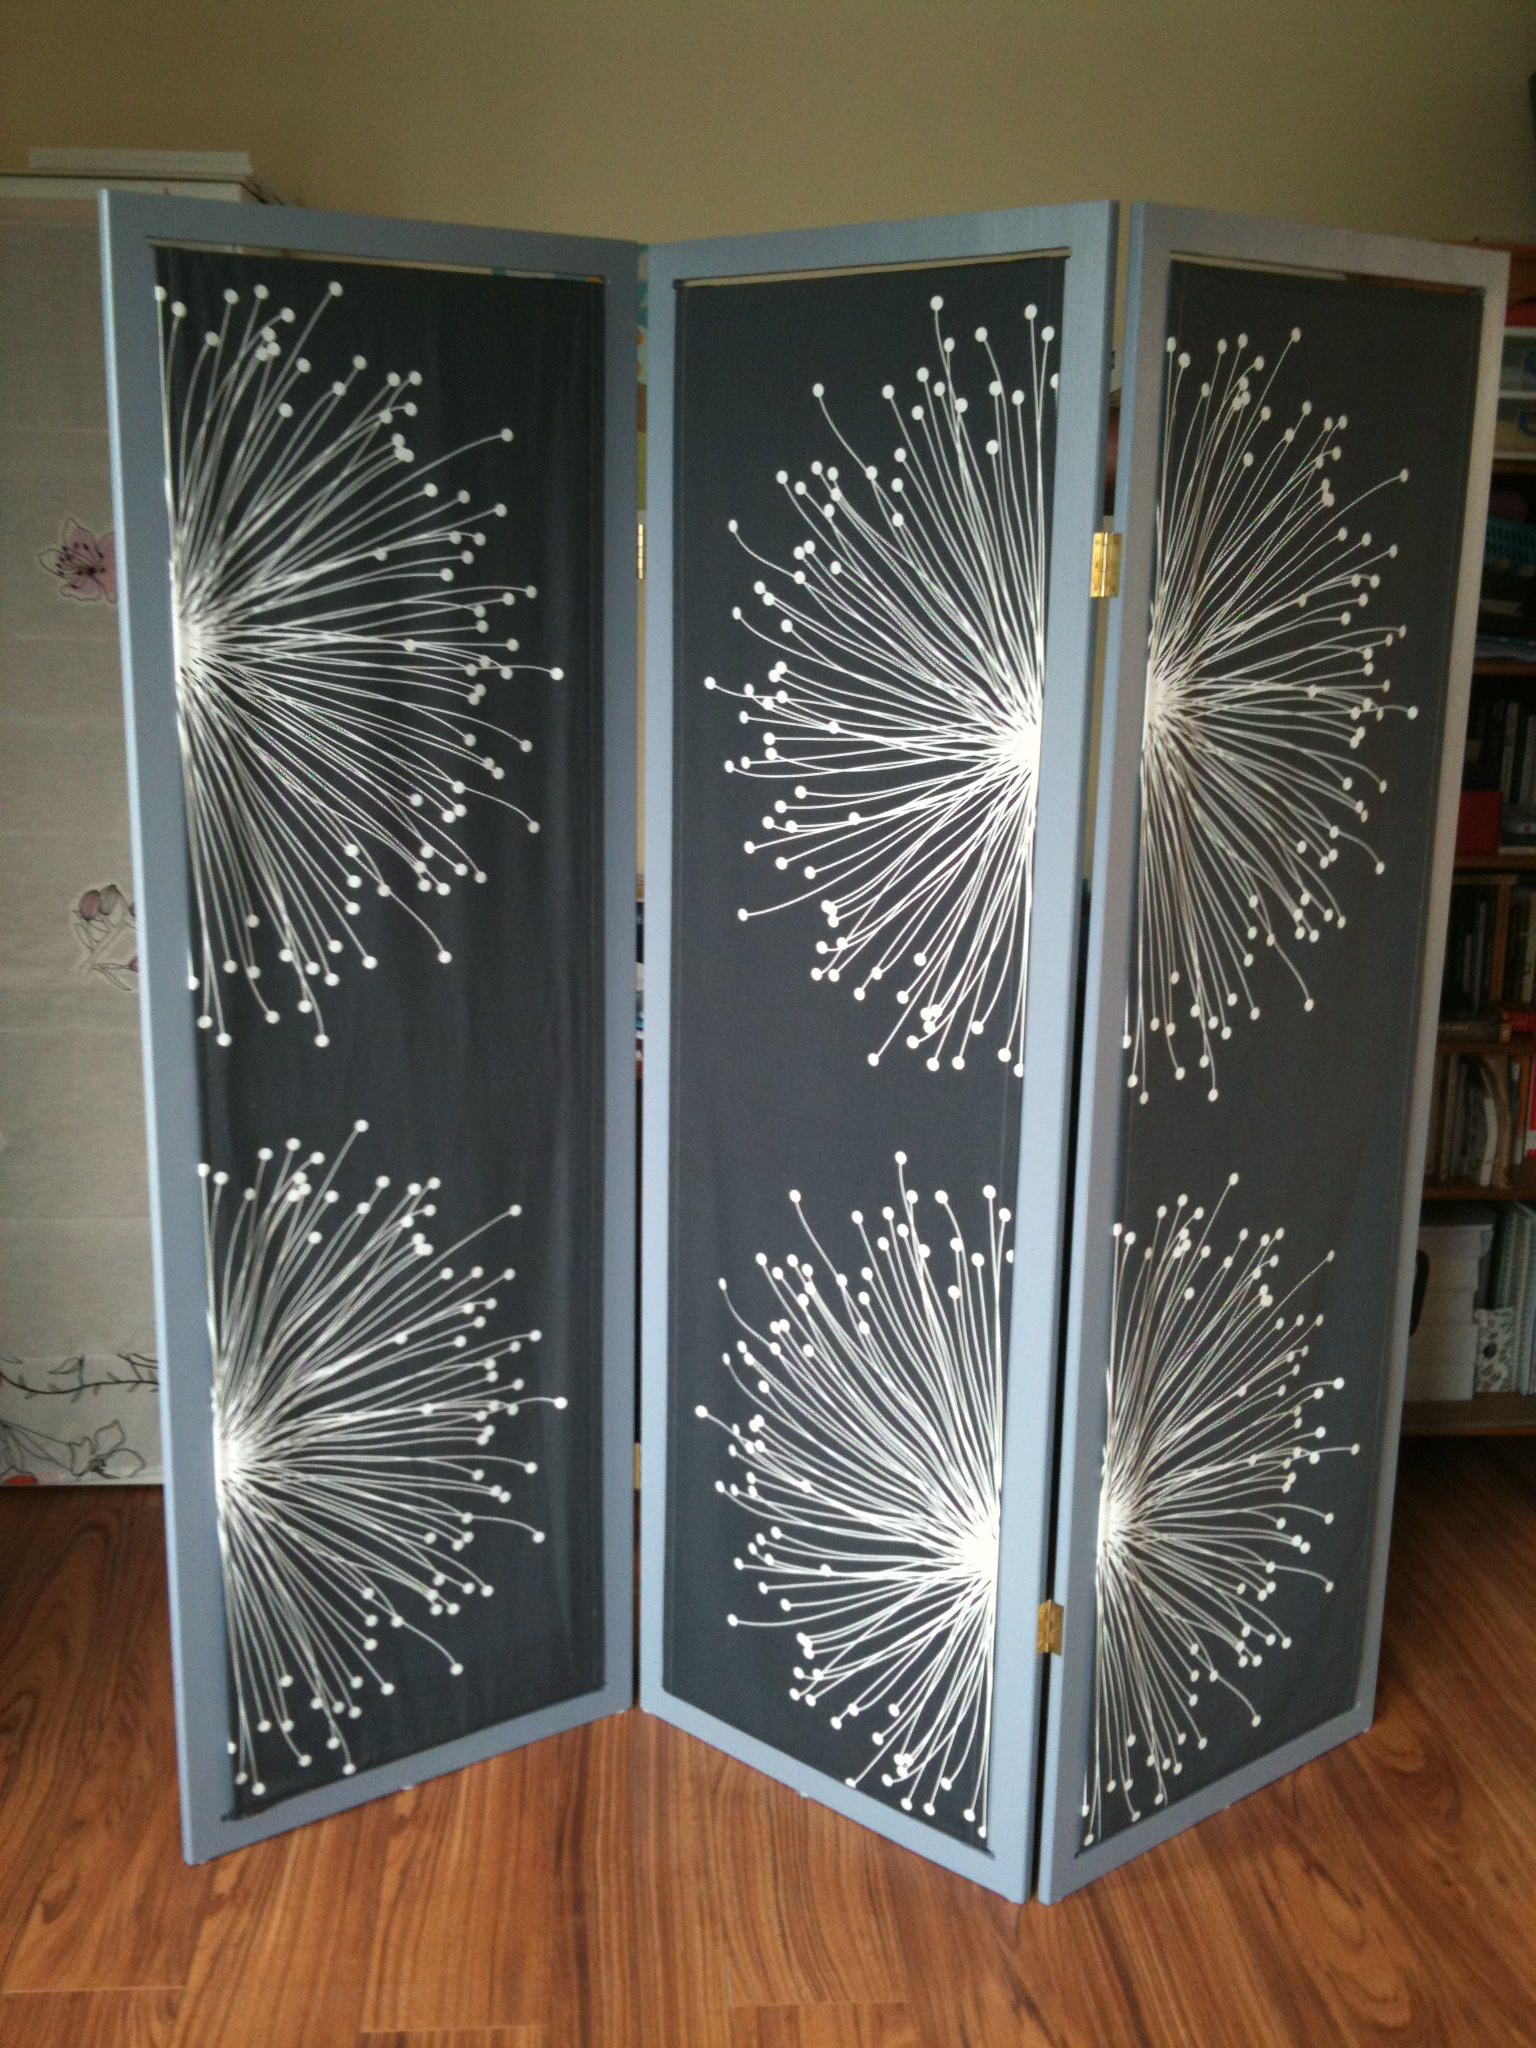 Exciting Room Dividers Diy for Your Space Room Decoration: Room Dividers Diy | Room Divider Ideas Ikea | Room Divider Ideas With Curtains